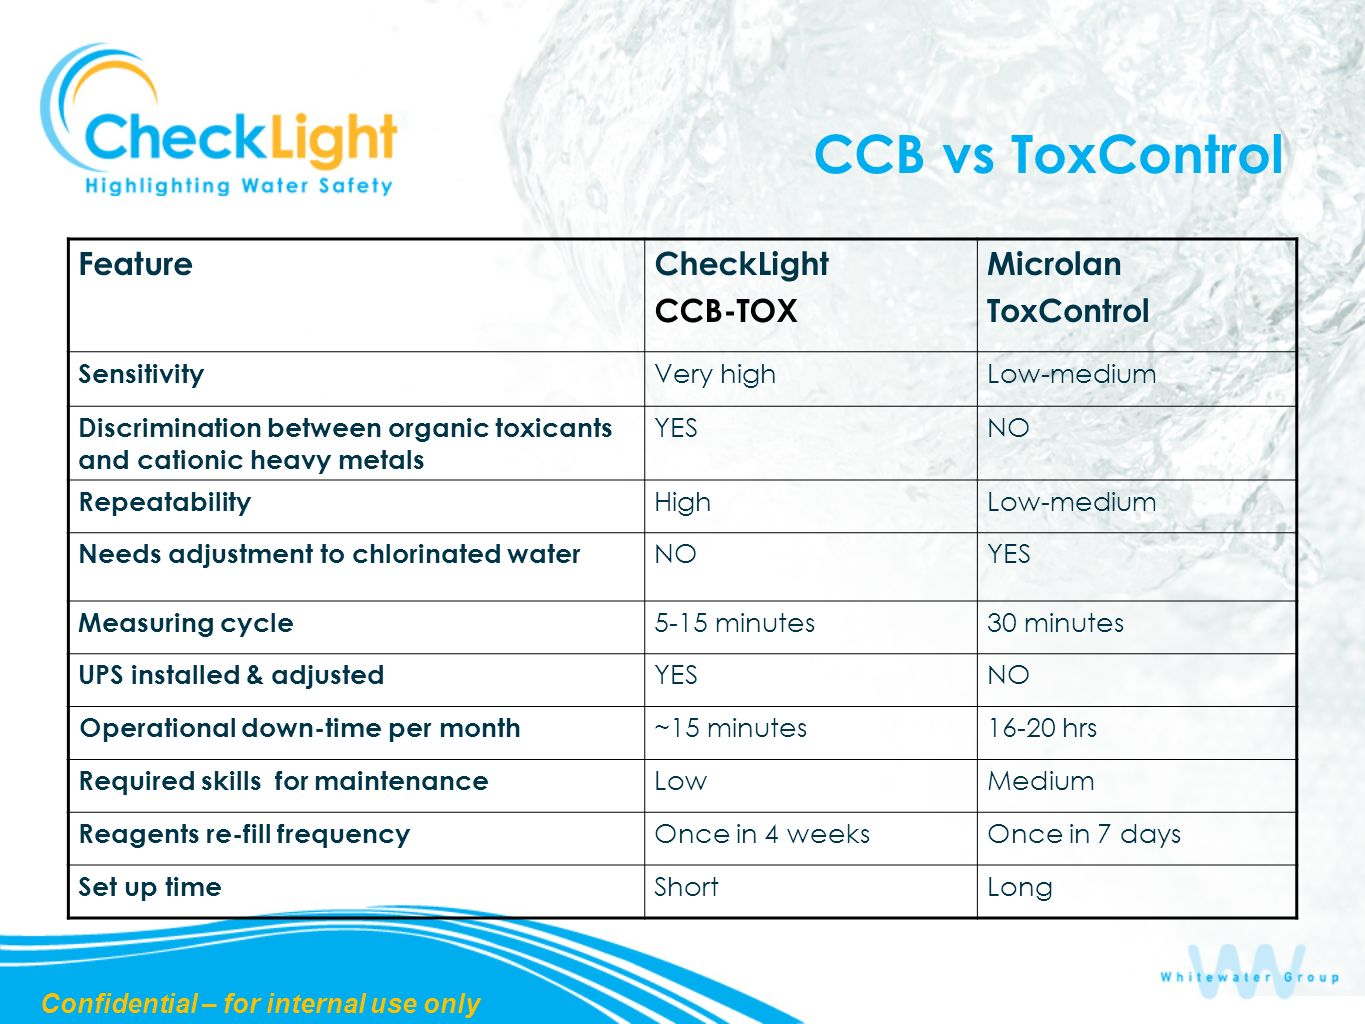 CCB vs ToxControl Microlan ToxControl CheckLight CCB-TOX Feature Low-mediumVery high Sensitivity NOYES Discrimination between organic toxicants and cationic heavy metals Low-mediumHigh Repeatability YESNO Needs adjustment to chlorinated water 30 minutes5-15 minutes Measuring cycle NOYES UPS installed & adjusted 16-20 hrs~15 minutes Operational down-time per month MediumLow Required skills for maintenance Once in 7 daysOnce in 4 weeks Reagents re-fill frequency LongShort Set up time Confidential – for internal use only